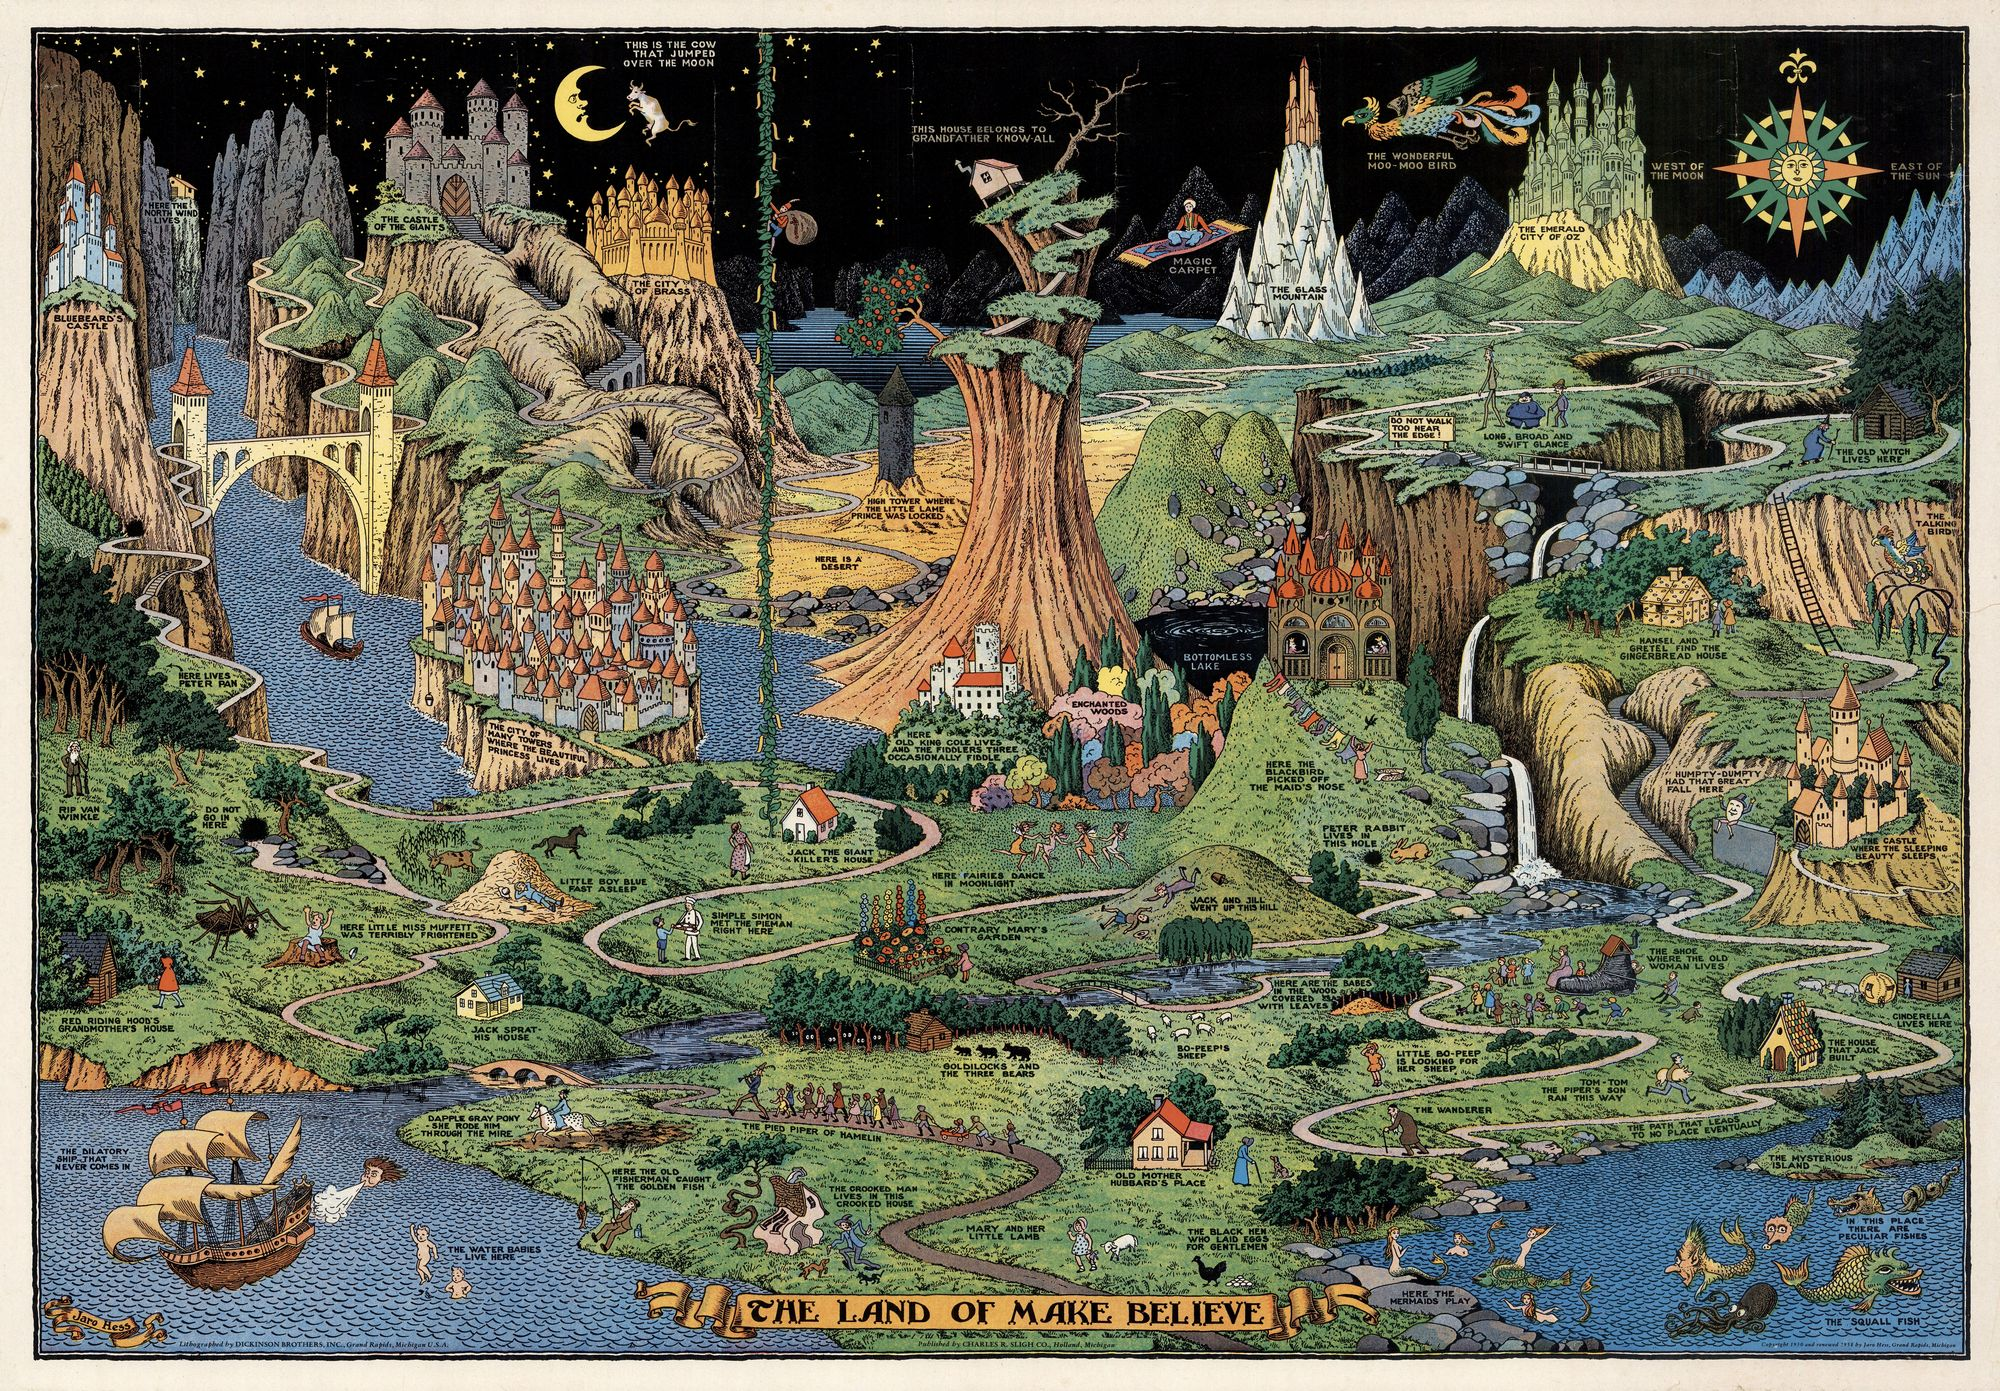 The Land of Make Believe by Jaro Hess, 1930